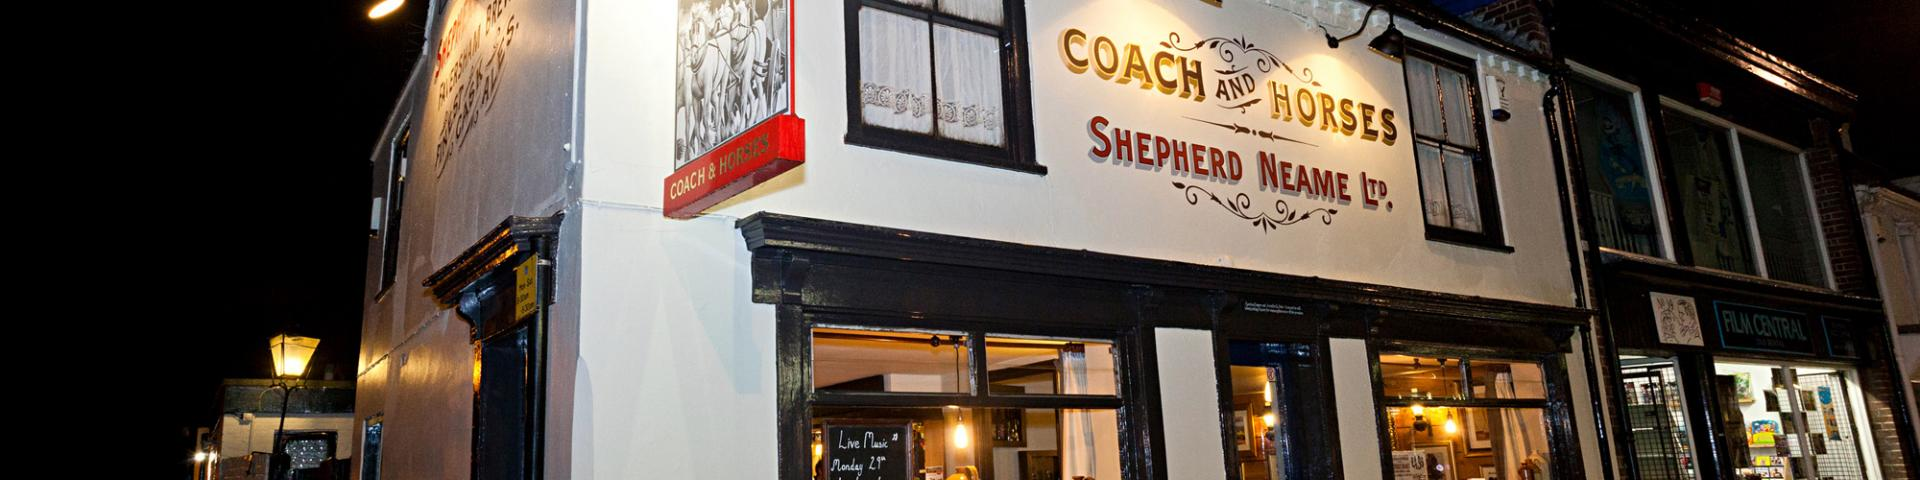 Coach & Horses Whitstable Local Attratcions